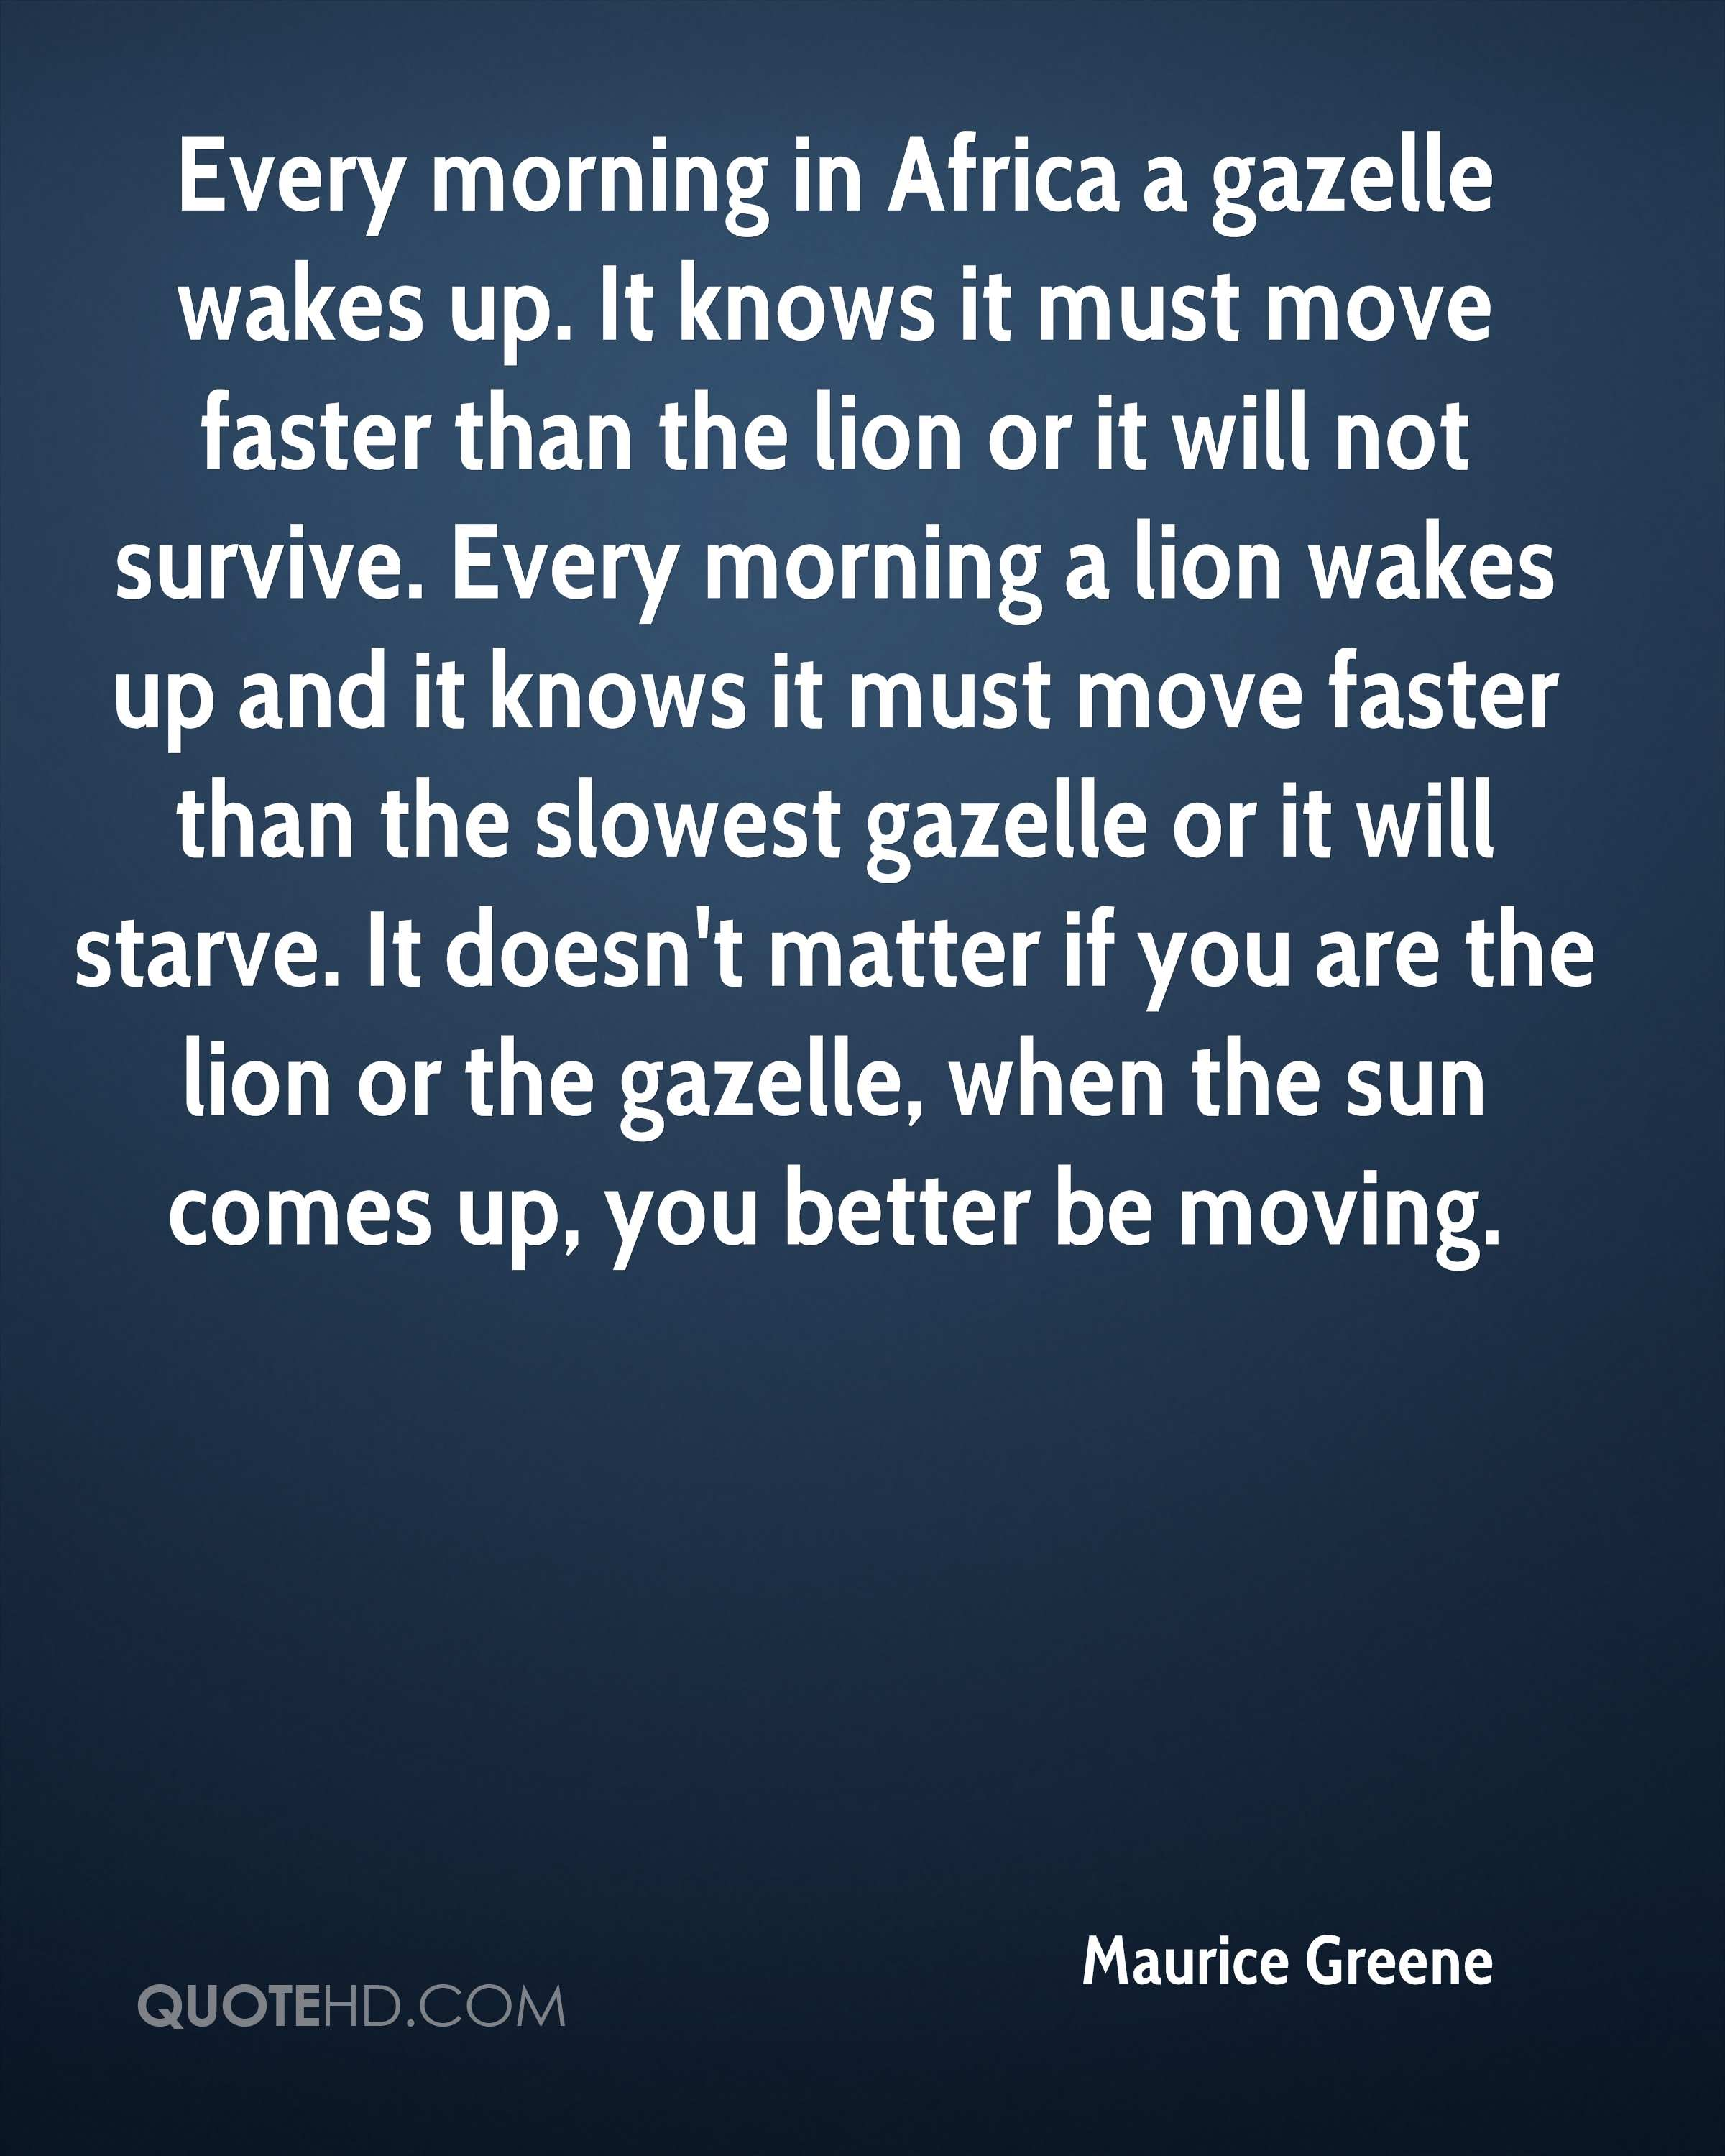 Every morning in Africa a gazelle wakes up. It knows it must move faster than the lion or it will not survive. Every morning a lion wakes up and it knows it must move faster than the slowest gazelle or it will starve. It doesn't matter if you are the lion or the gazelle, when the sun comes up, you better be moving.